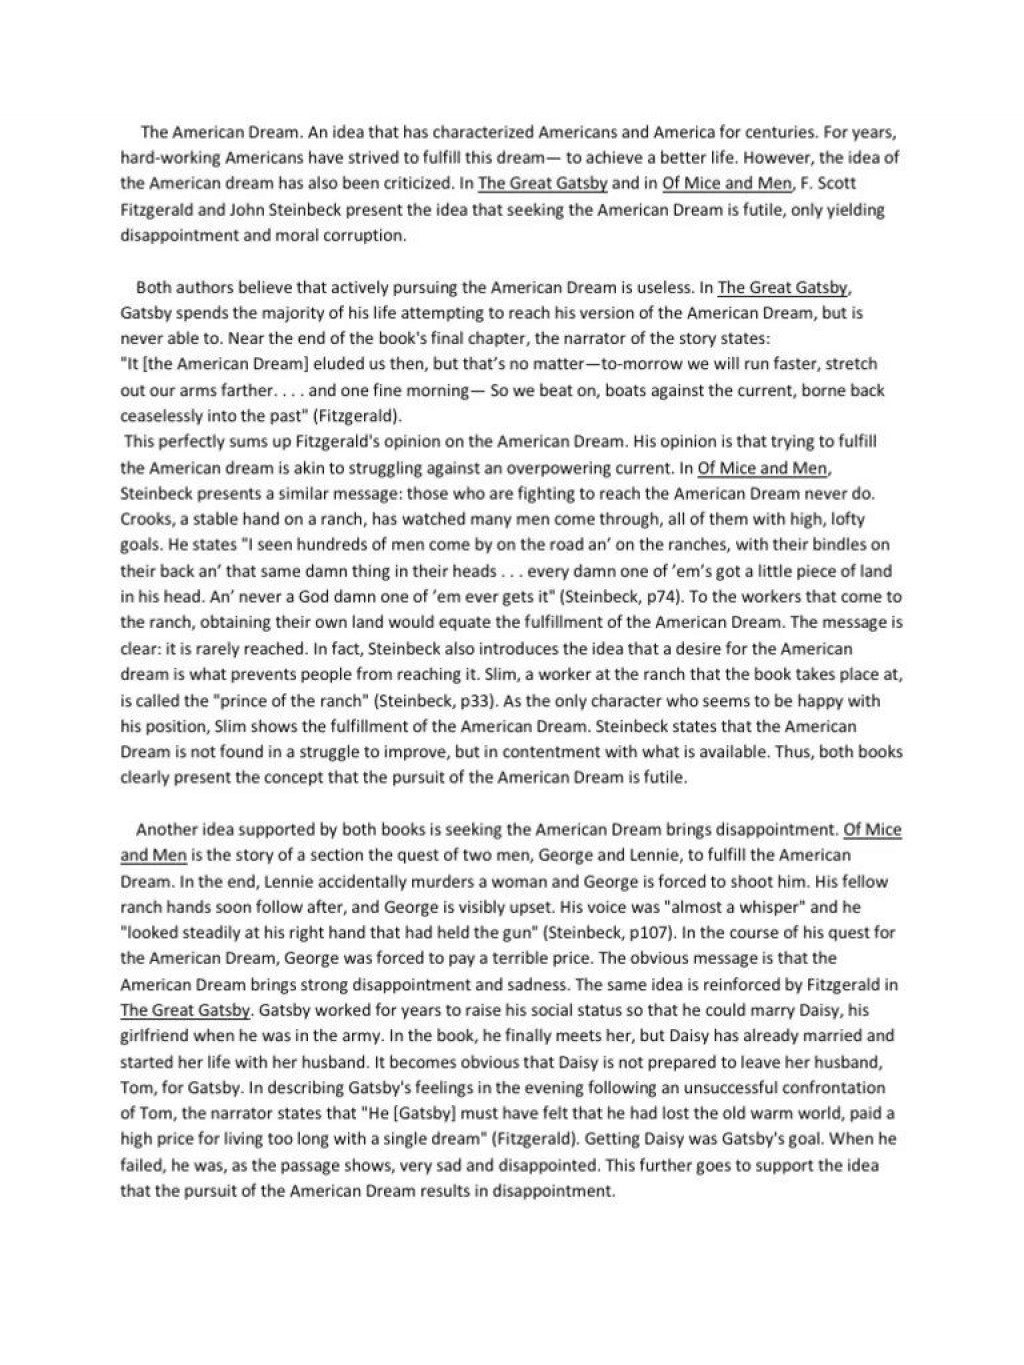 006 Frightening Of Mice And Men Essay Sample  Prompt TopicLarge